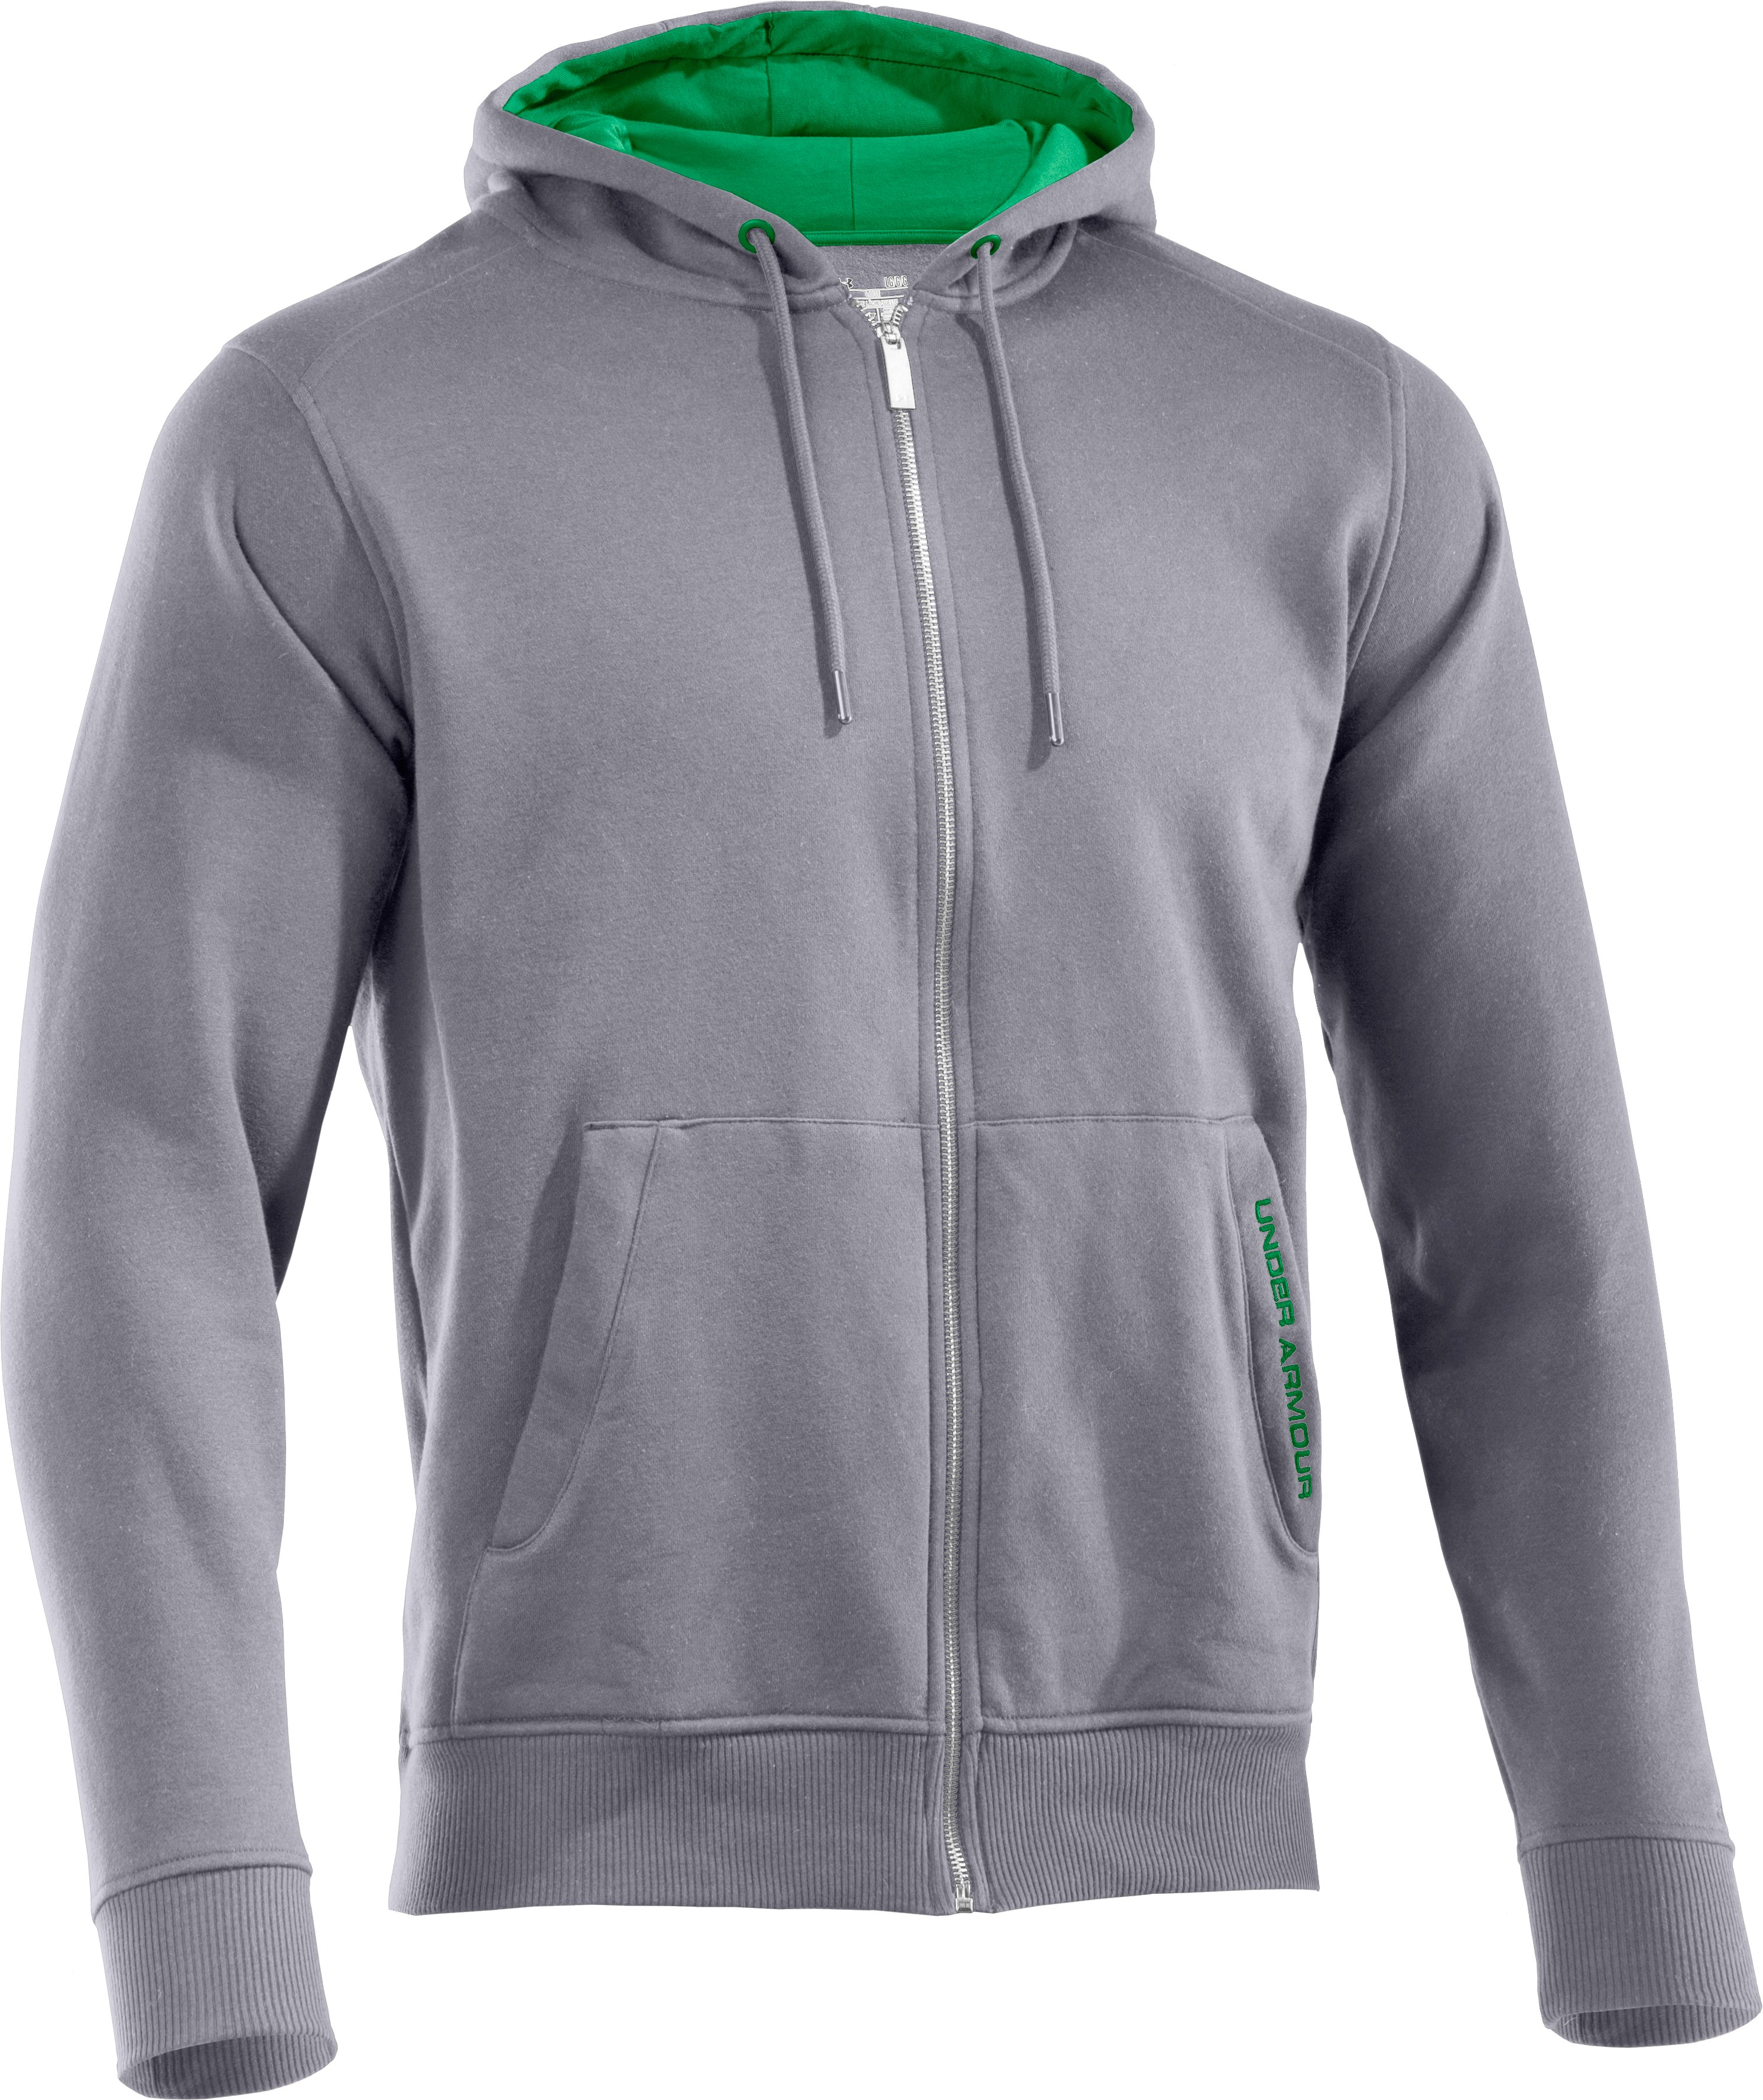 Men's Charged Cotton® Storm Full Zip Hoodie, Aluminum, undefined